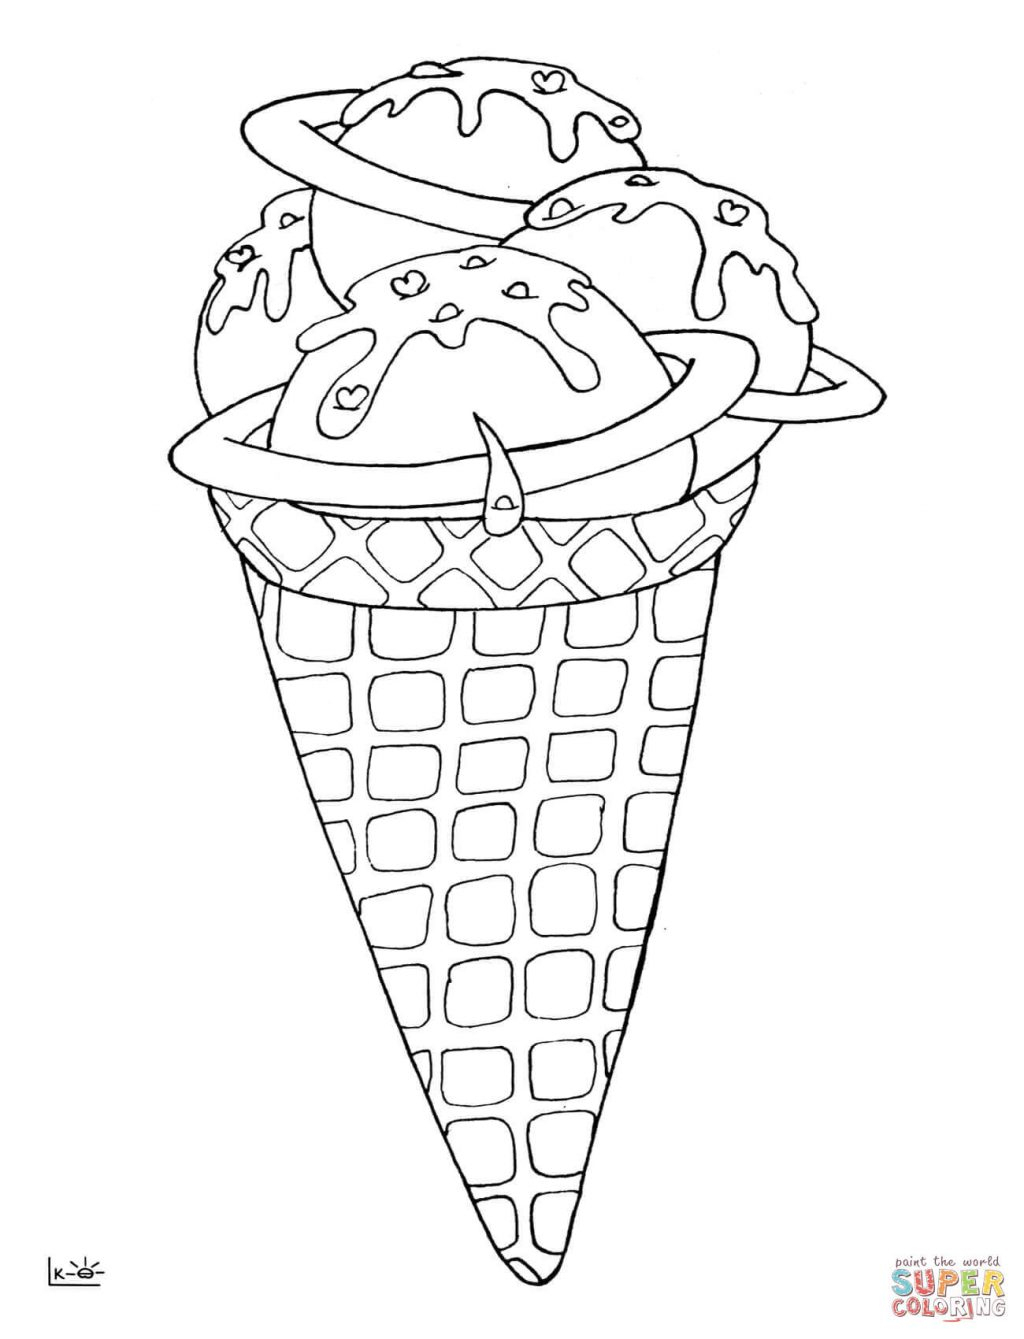 Coloring Pages ~ Ice Cream Cone Coloring Pages For Adults Kids - Ice Cream Cone Template Free Printable